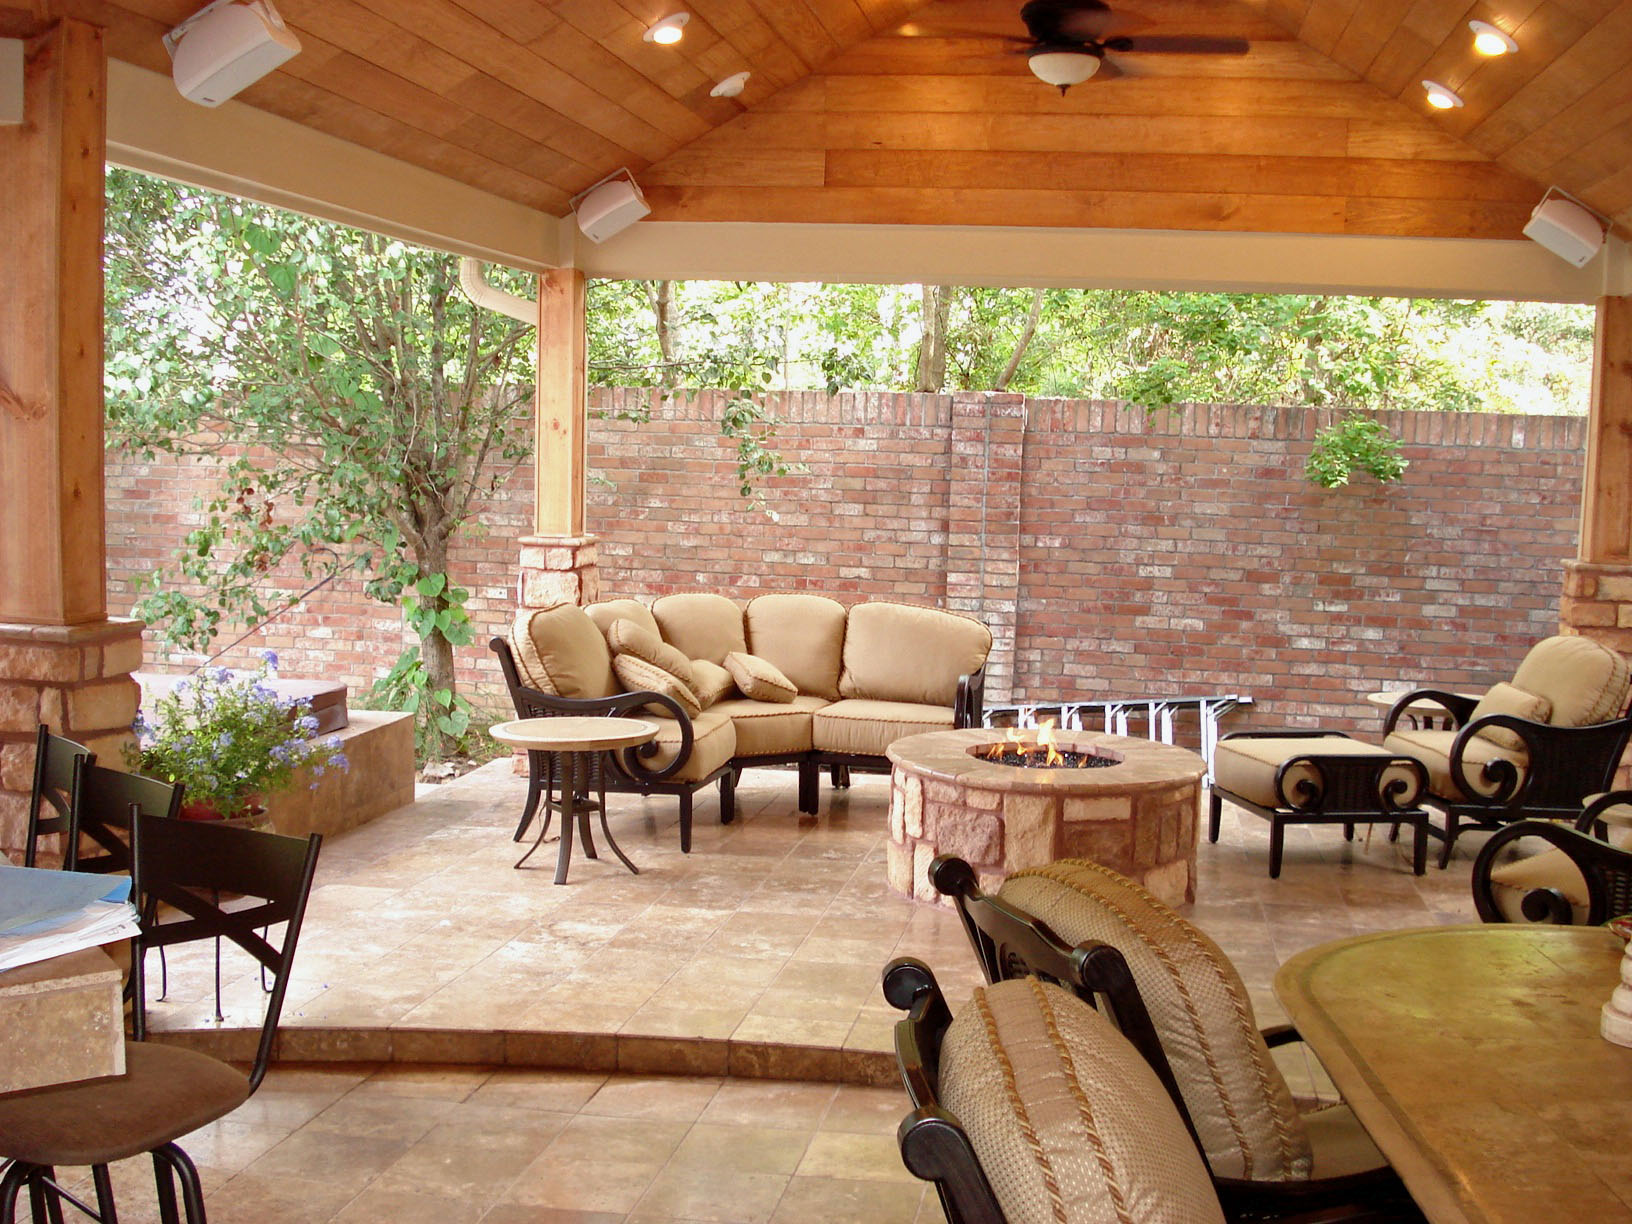 Houston outdoor living spaces fire pit and spa - Covered outdoor living spaces ...